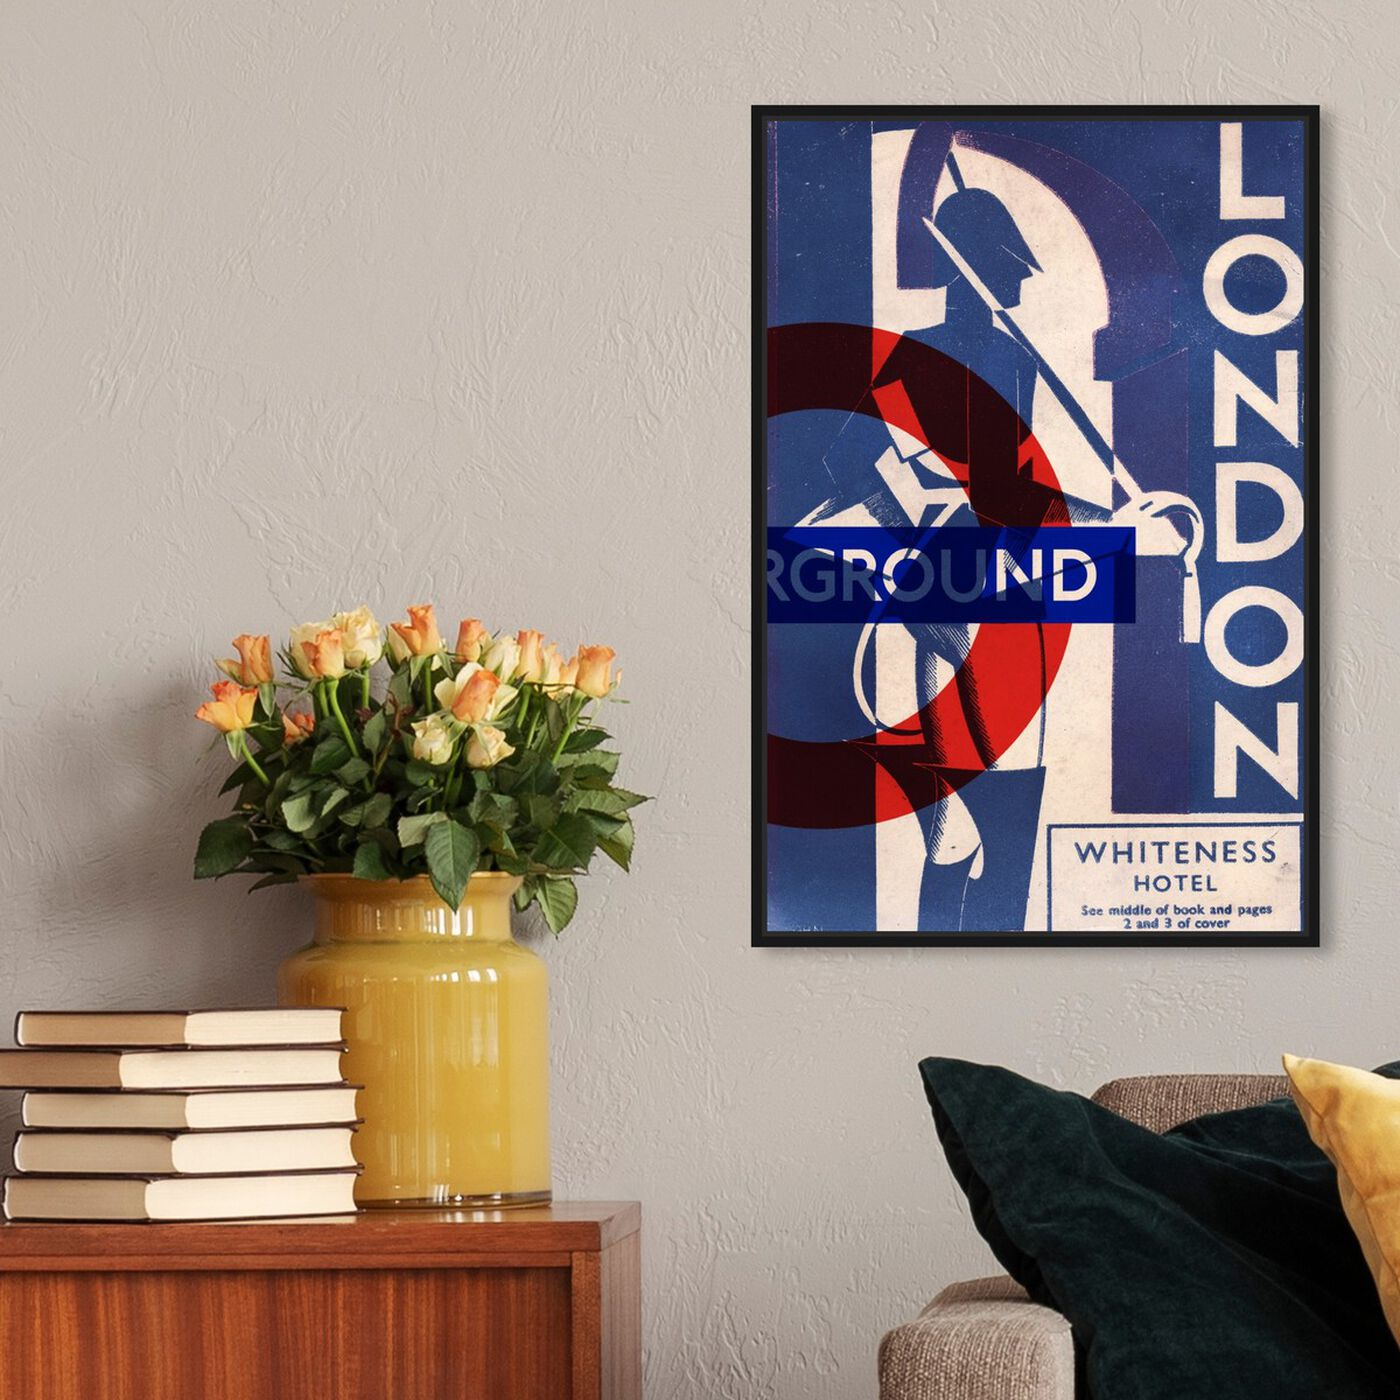 Hanging view of London Blues featuring advertising and posters art.